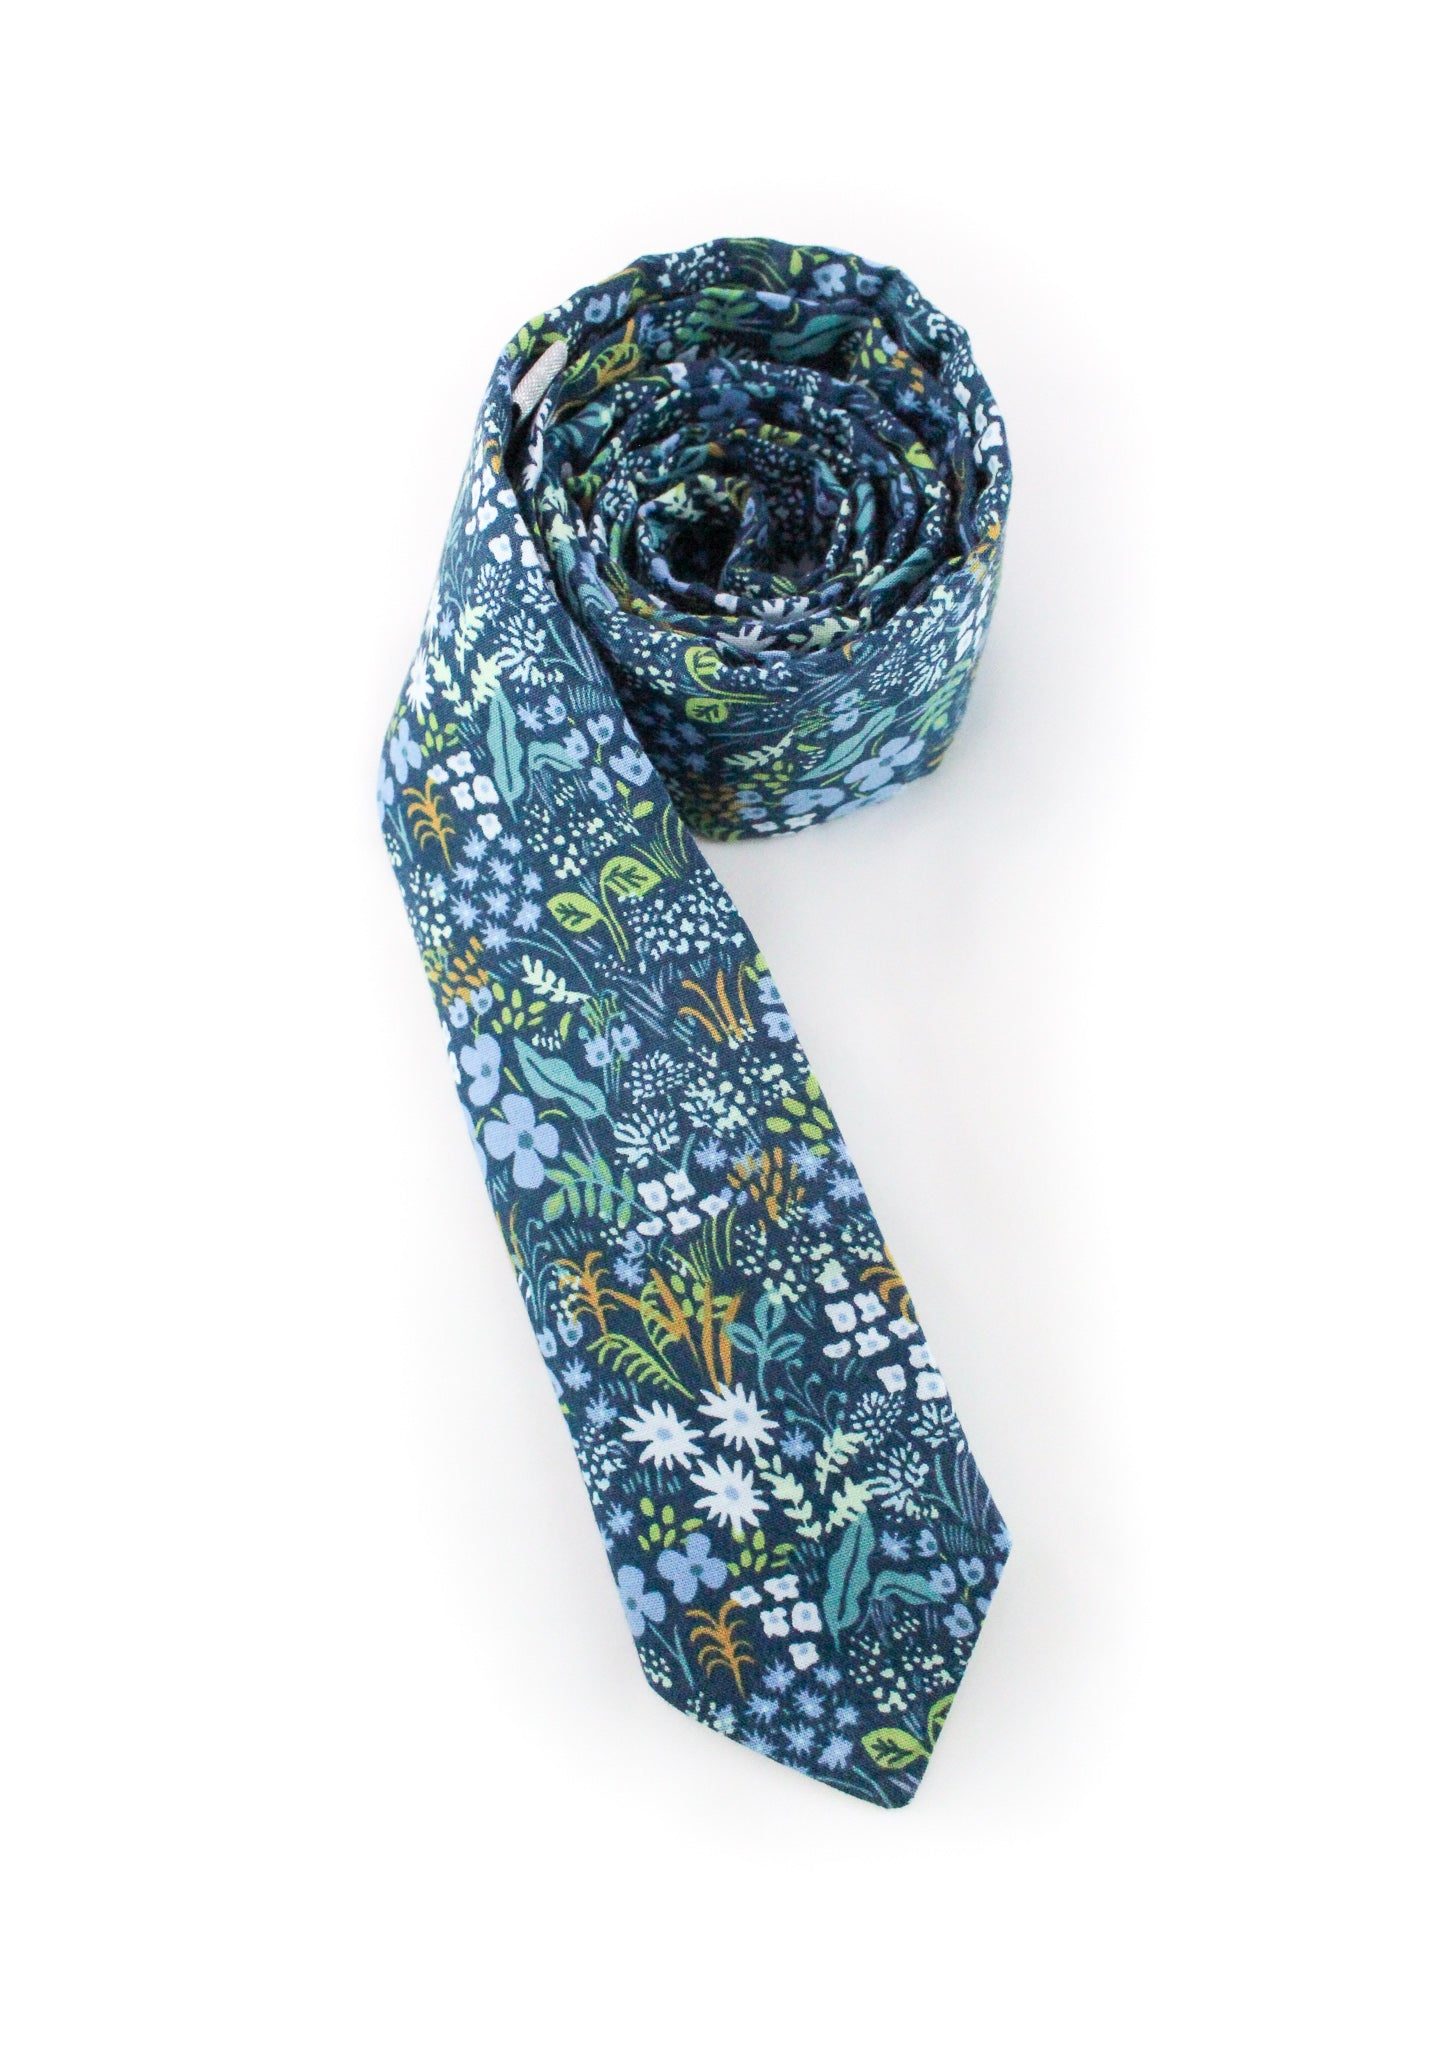 tie blue floral forest nature gift for him  www.GroovyTieSquad.com